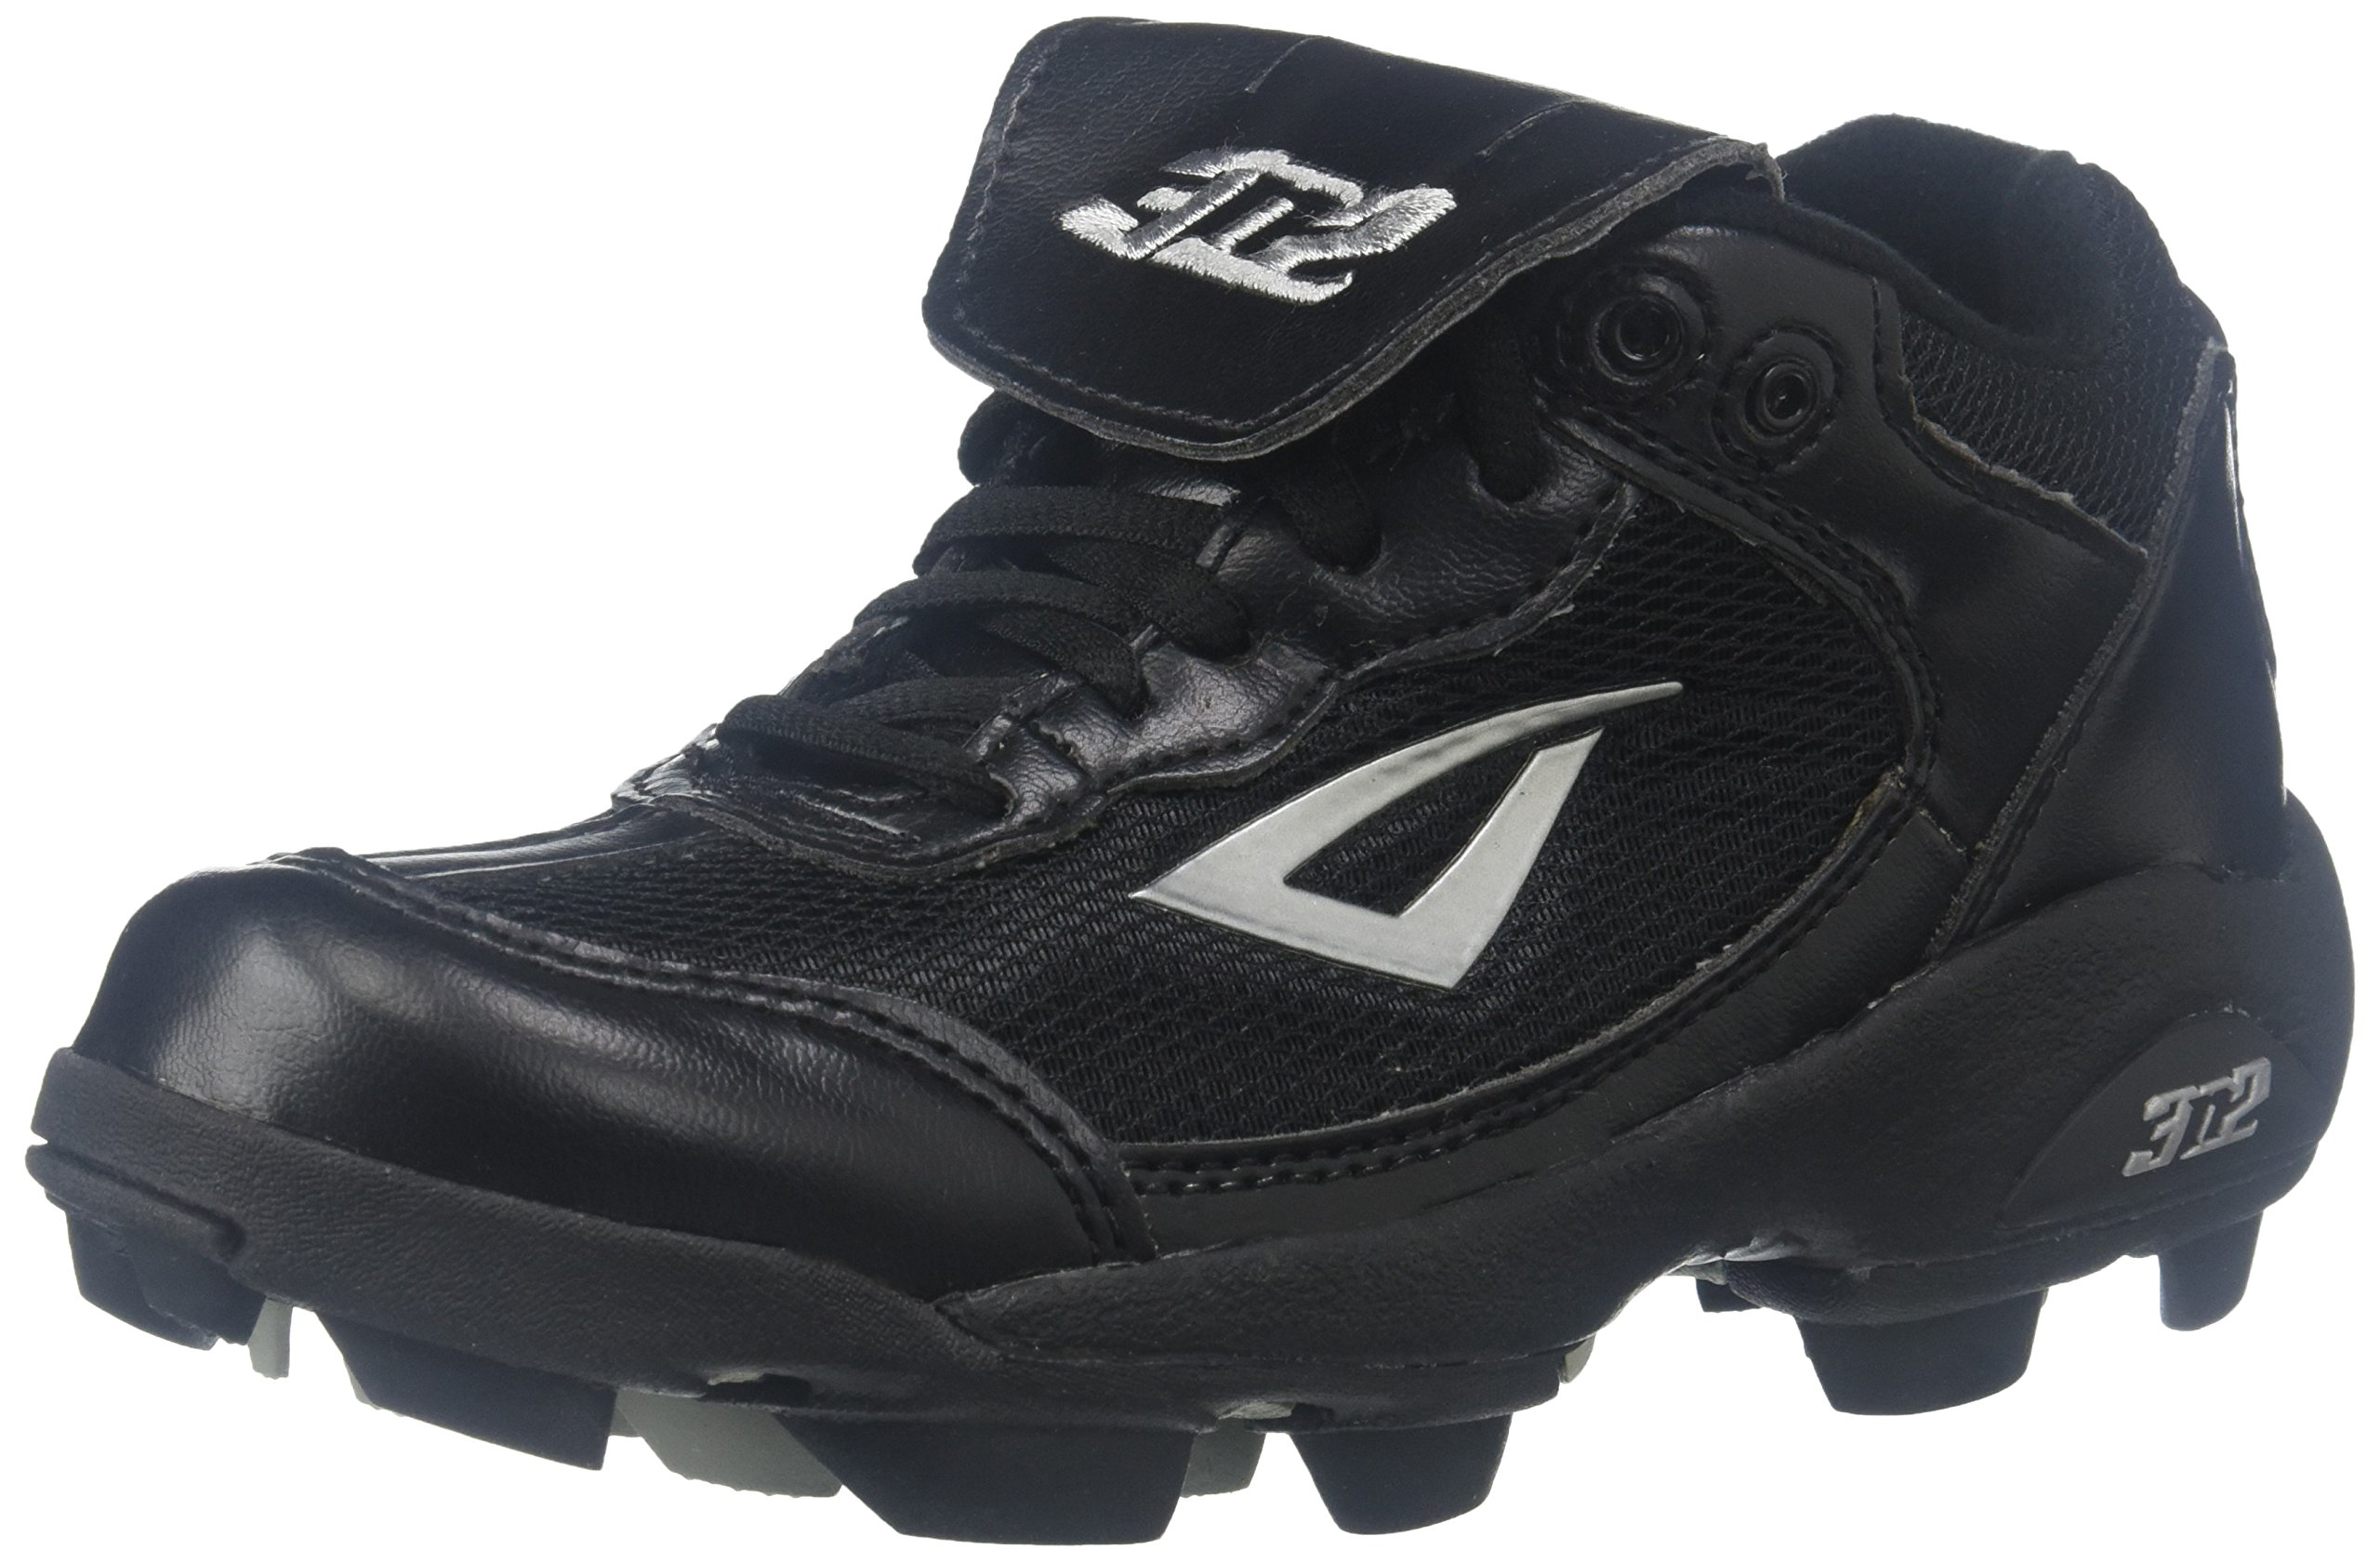 3N2 Youth Rookie Shoes, Black/Silver, Size 2 by 3N2